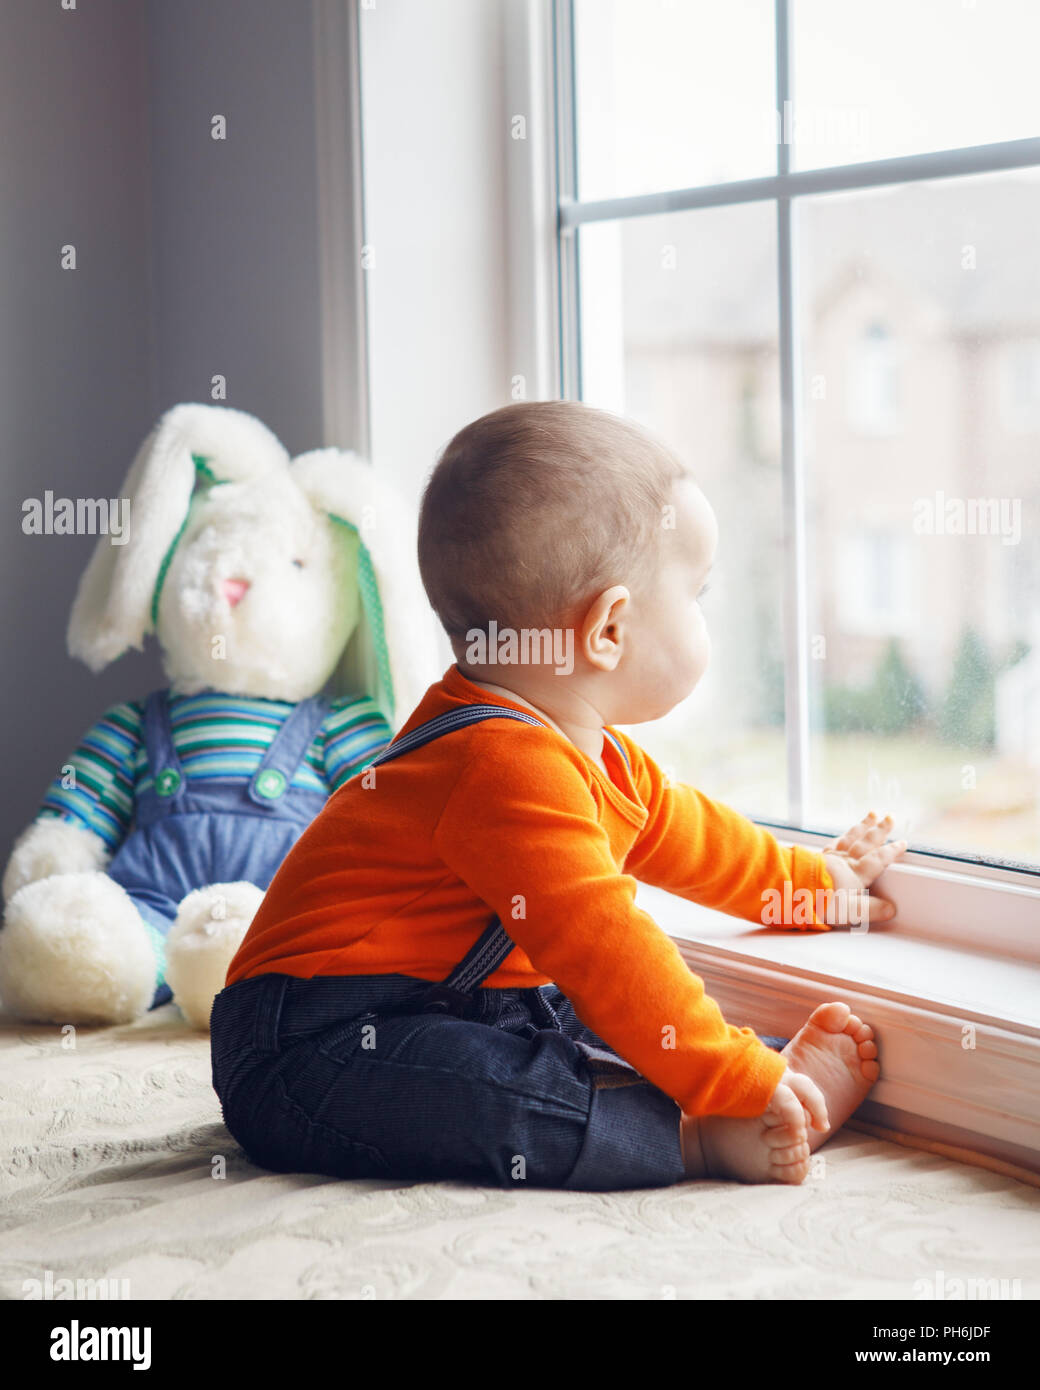 a9c6c4015 Portrait of cute adorable Caucasian baby boy in orange shirt onesie, jeans  with suspenders barefoot sitting with bunny toy on windowsill looking away,